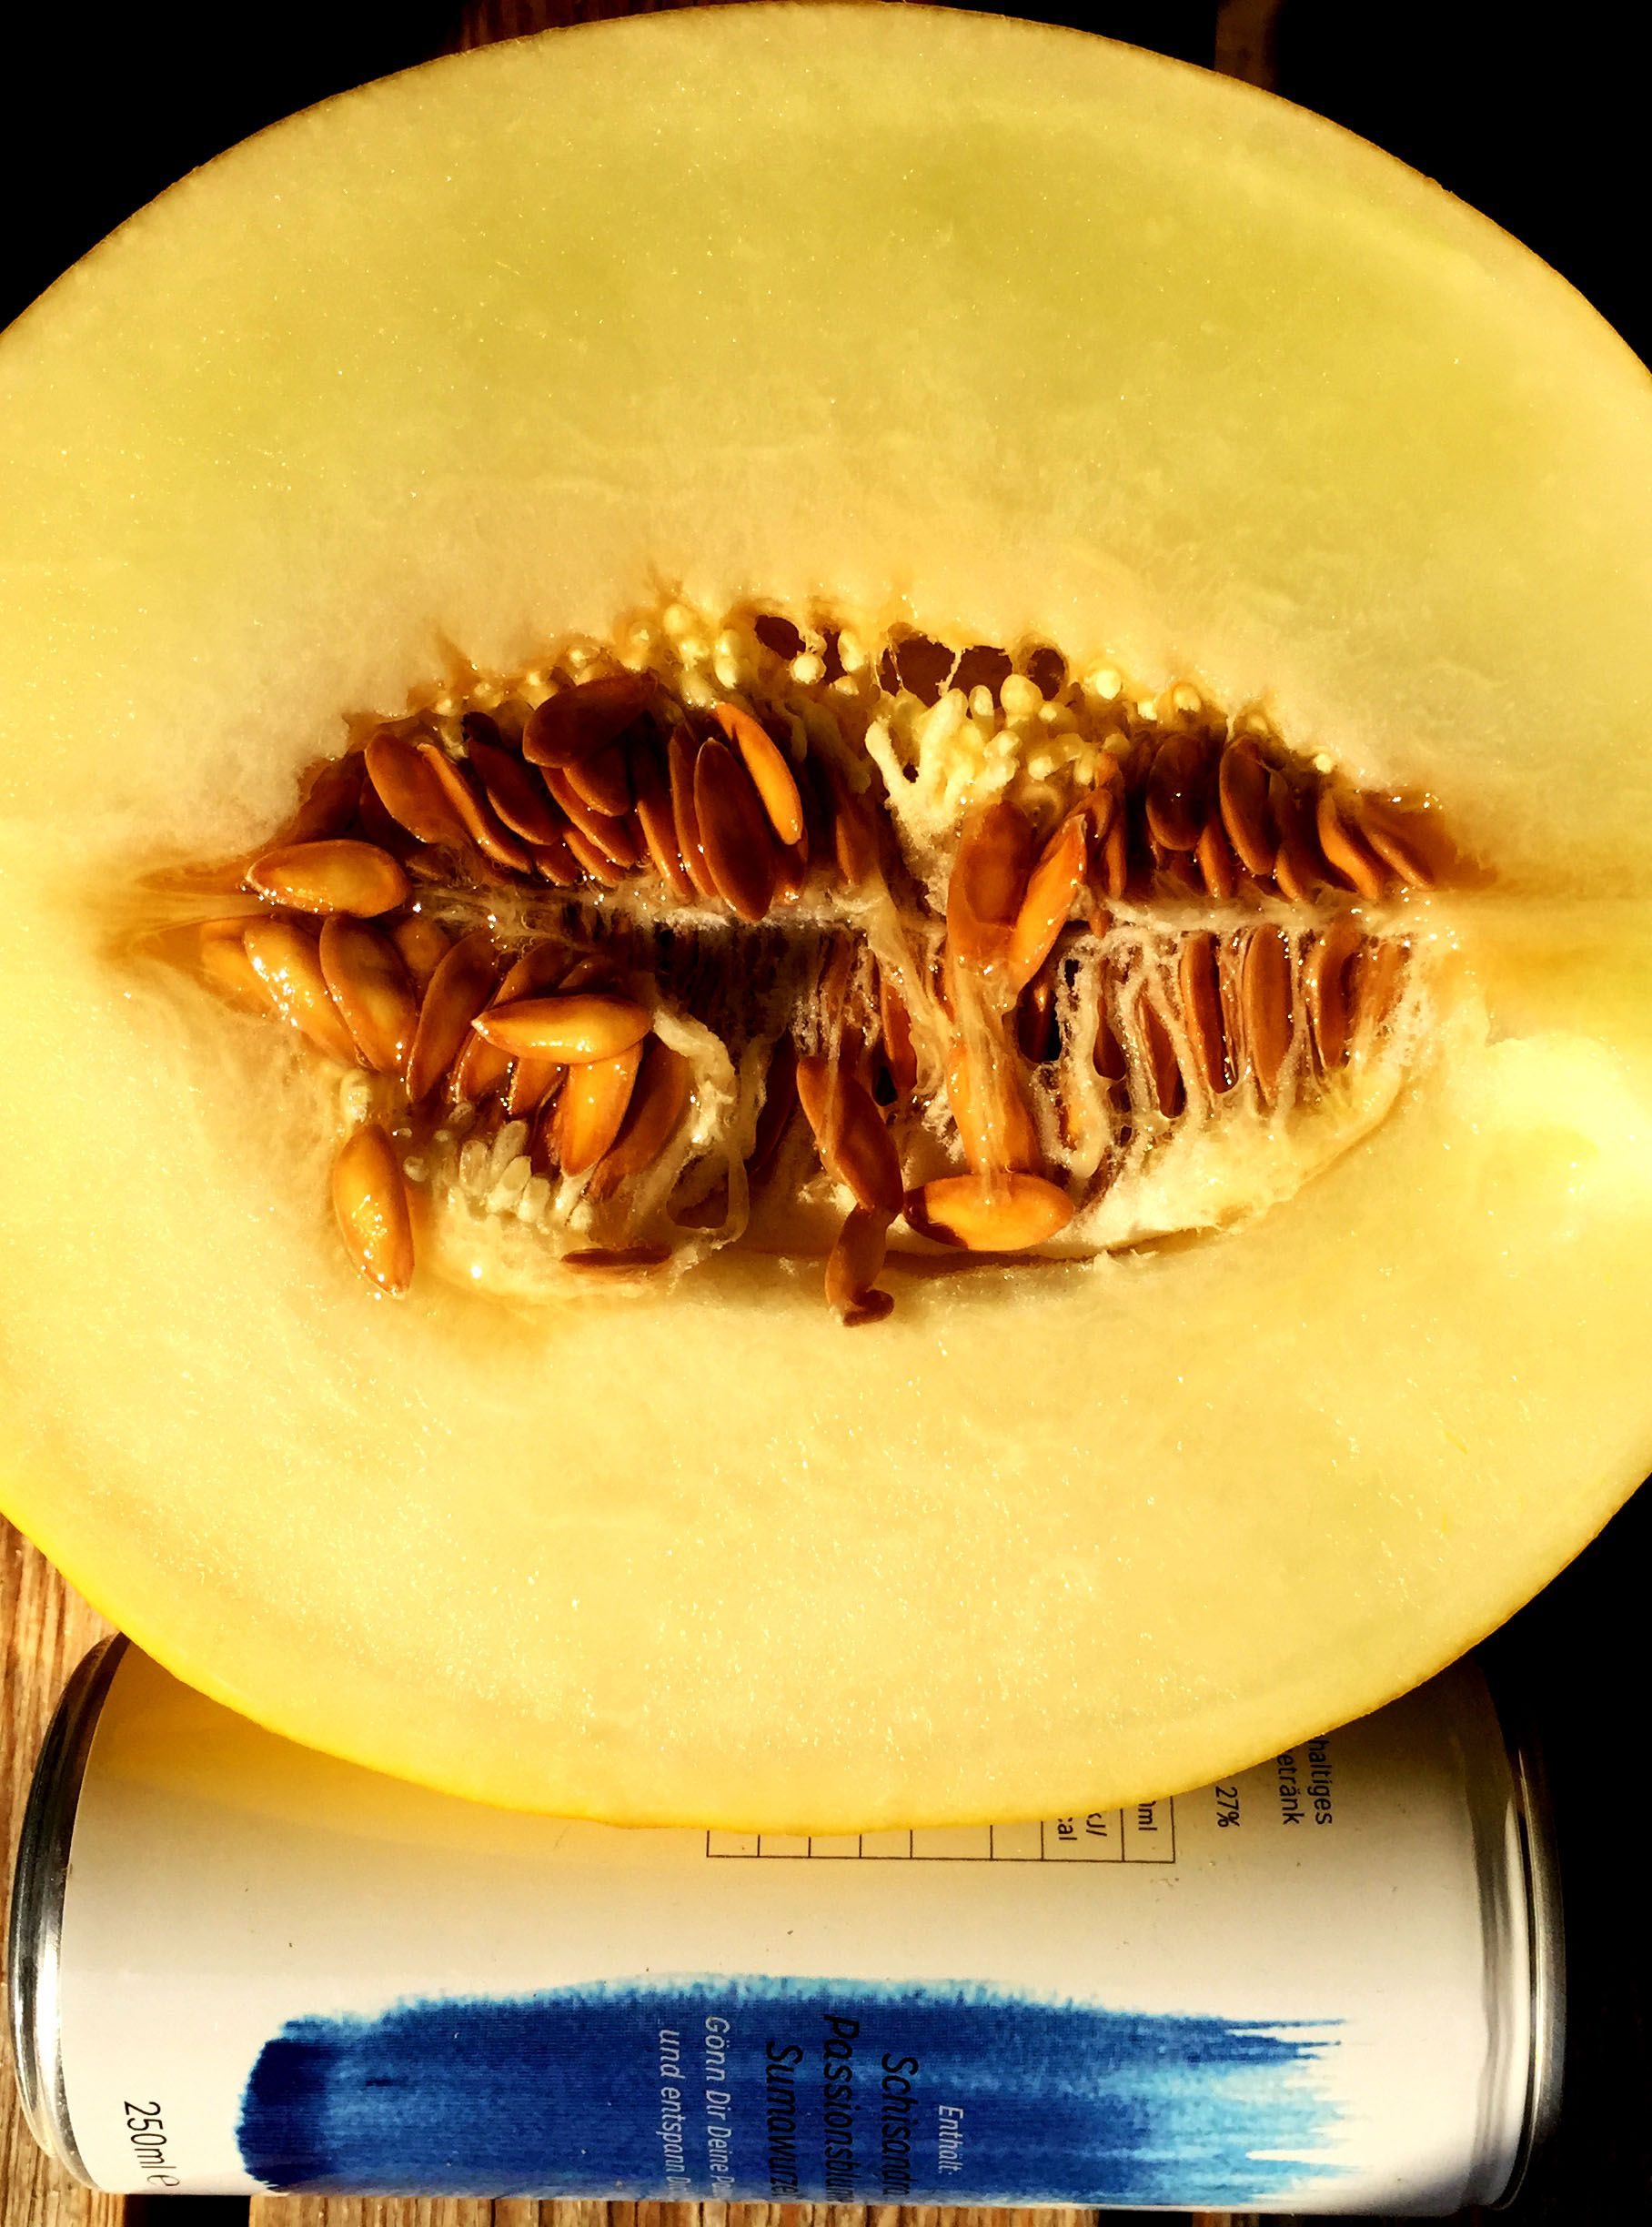 Honeymelon with a fresh rest. We love healthy and natural food. It`s the best. #restdrink #relaxation #fruitsalad #fruitphotography #food #veggie #fruitporn